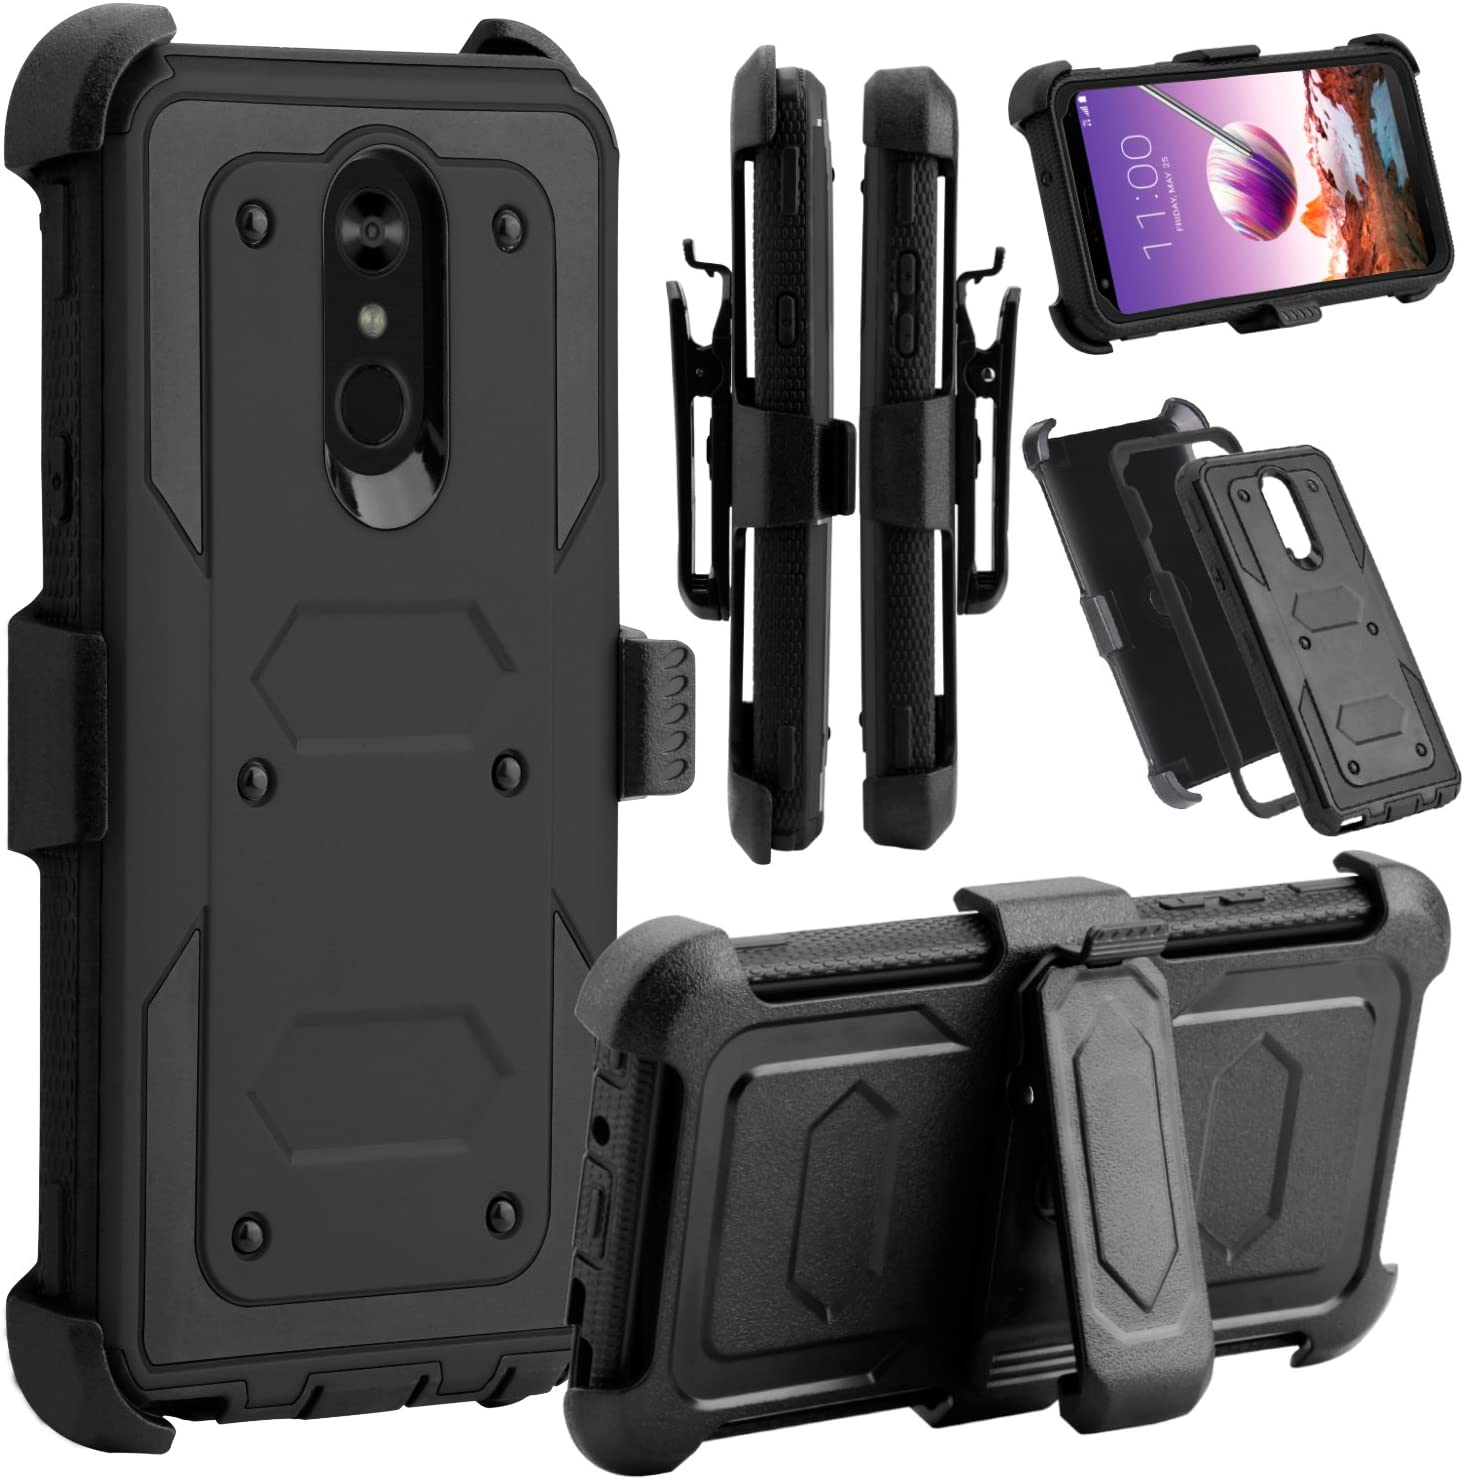 Venoro LG Stylo 4 Phone Case, LG Stylo 4 Case, Heavy Duty Shockproof Full Body Protection Case Cover with Swivel Belt Clip and Kickstand for LG Q Stylo/LG Stylo 4+ / LG Stylo 4 Plus (Black)